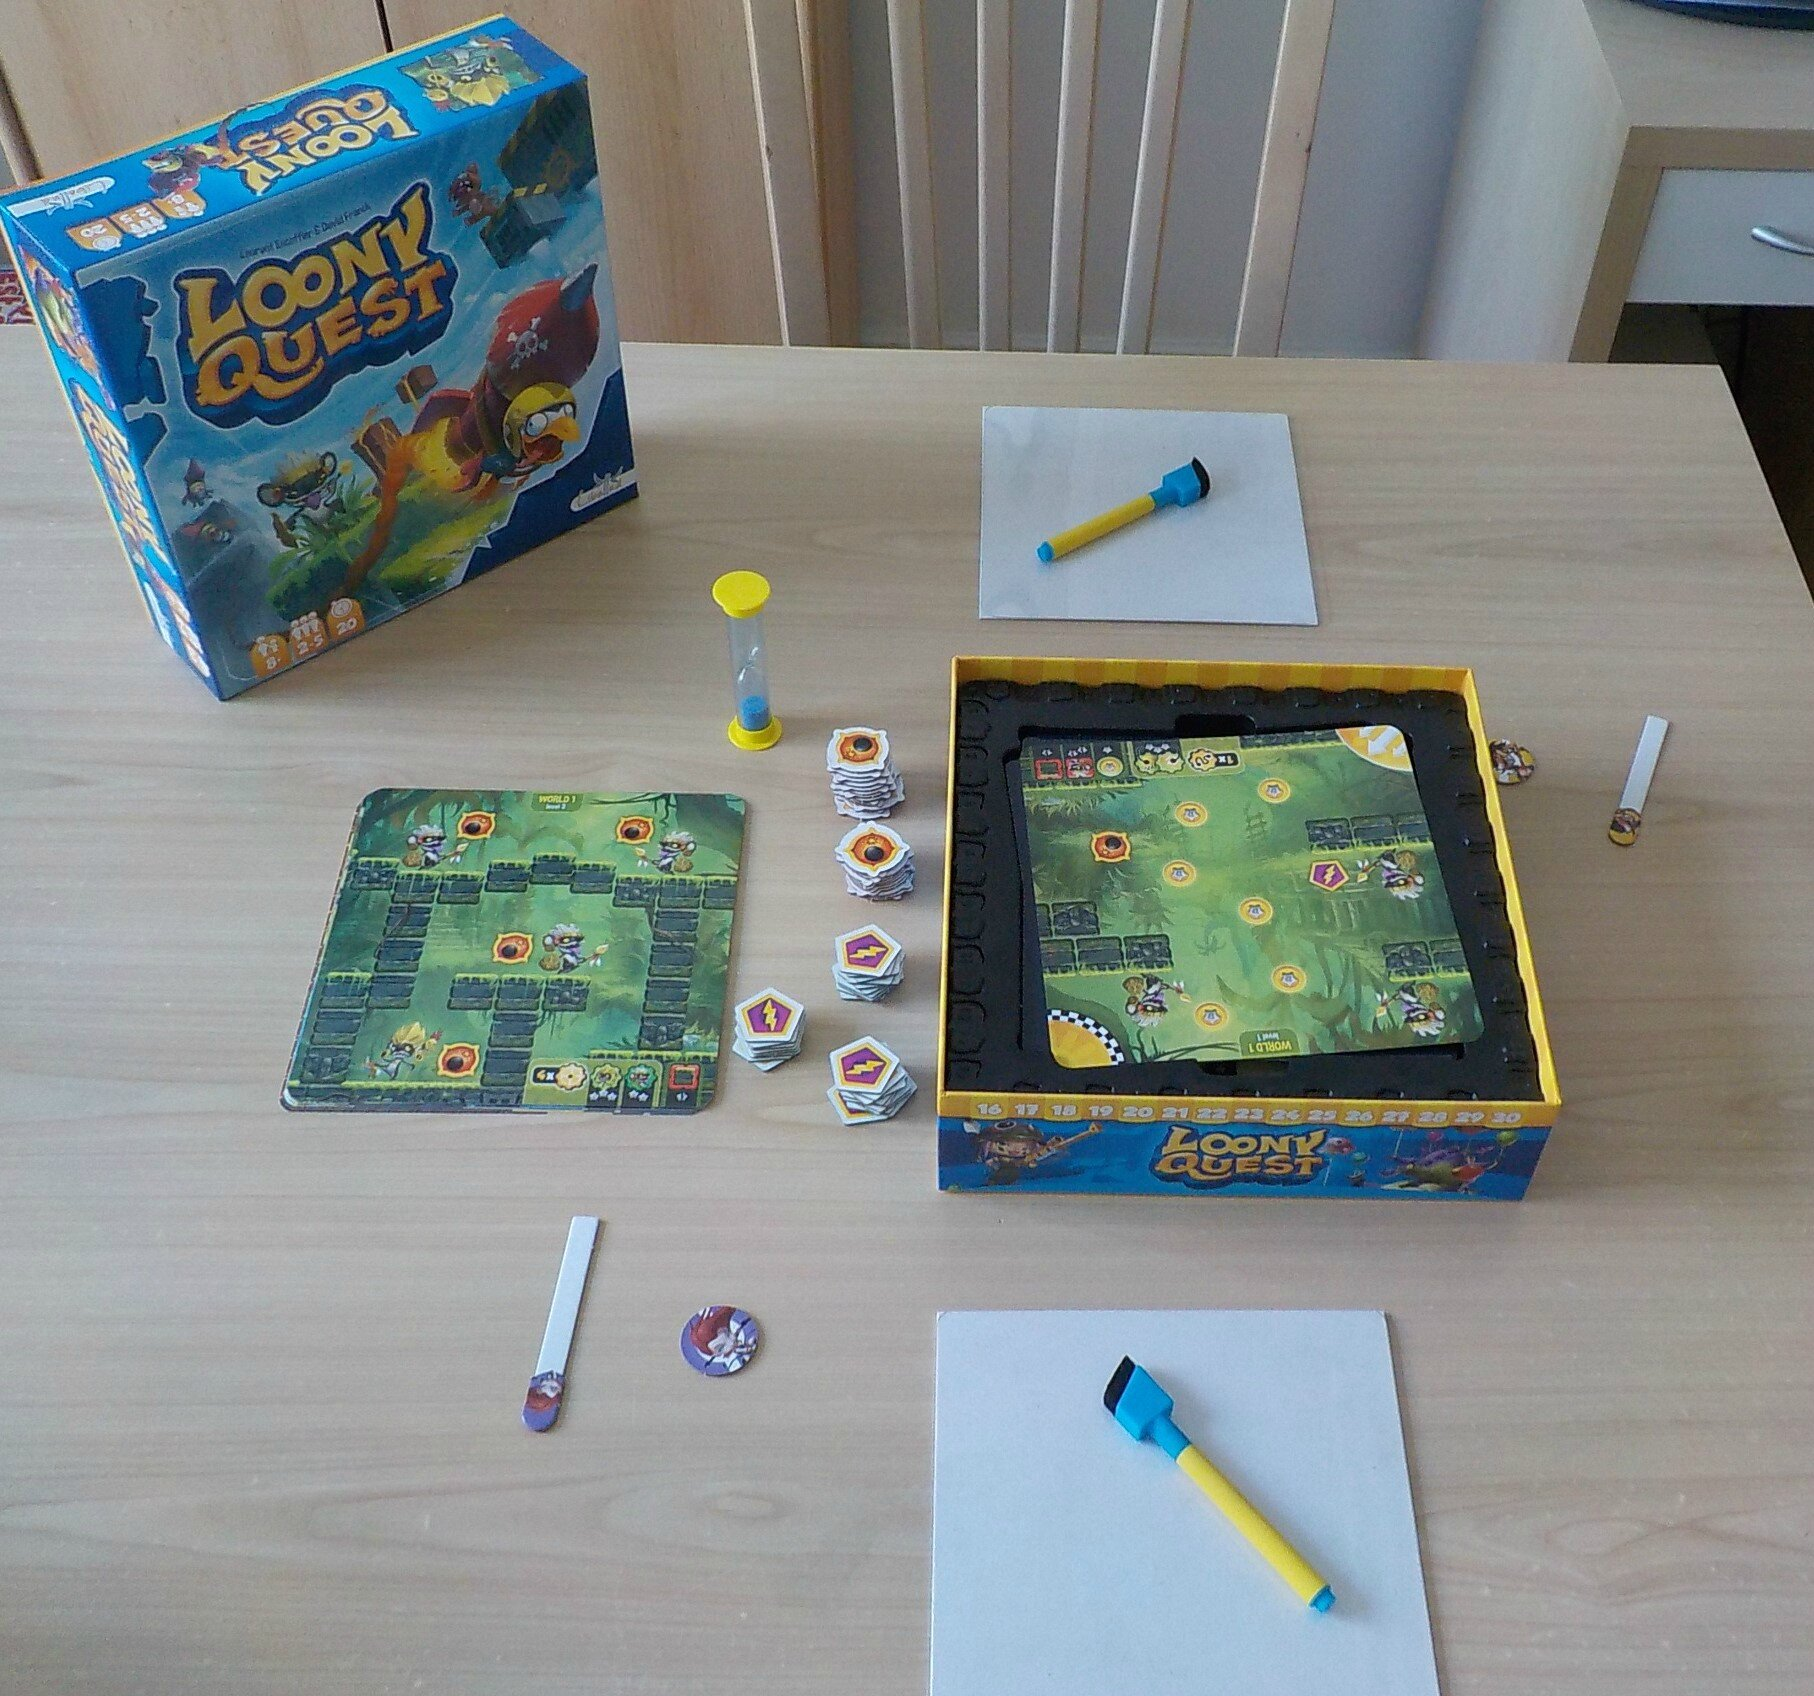 Loony quest. Indispensable..